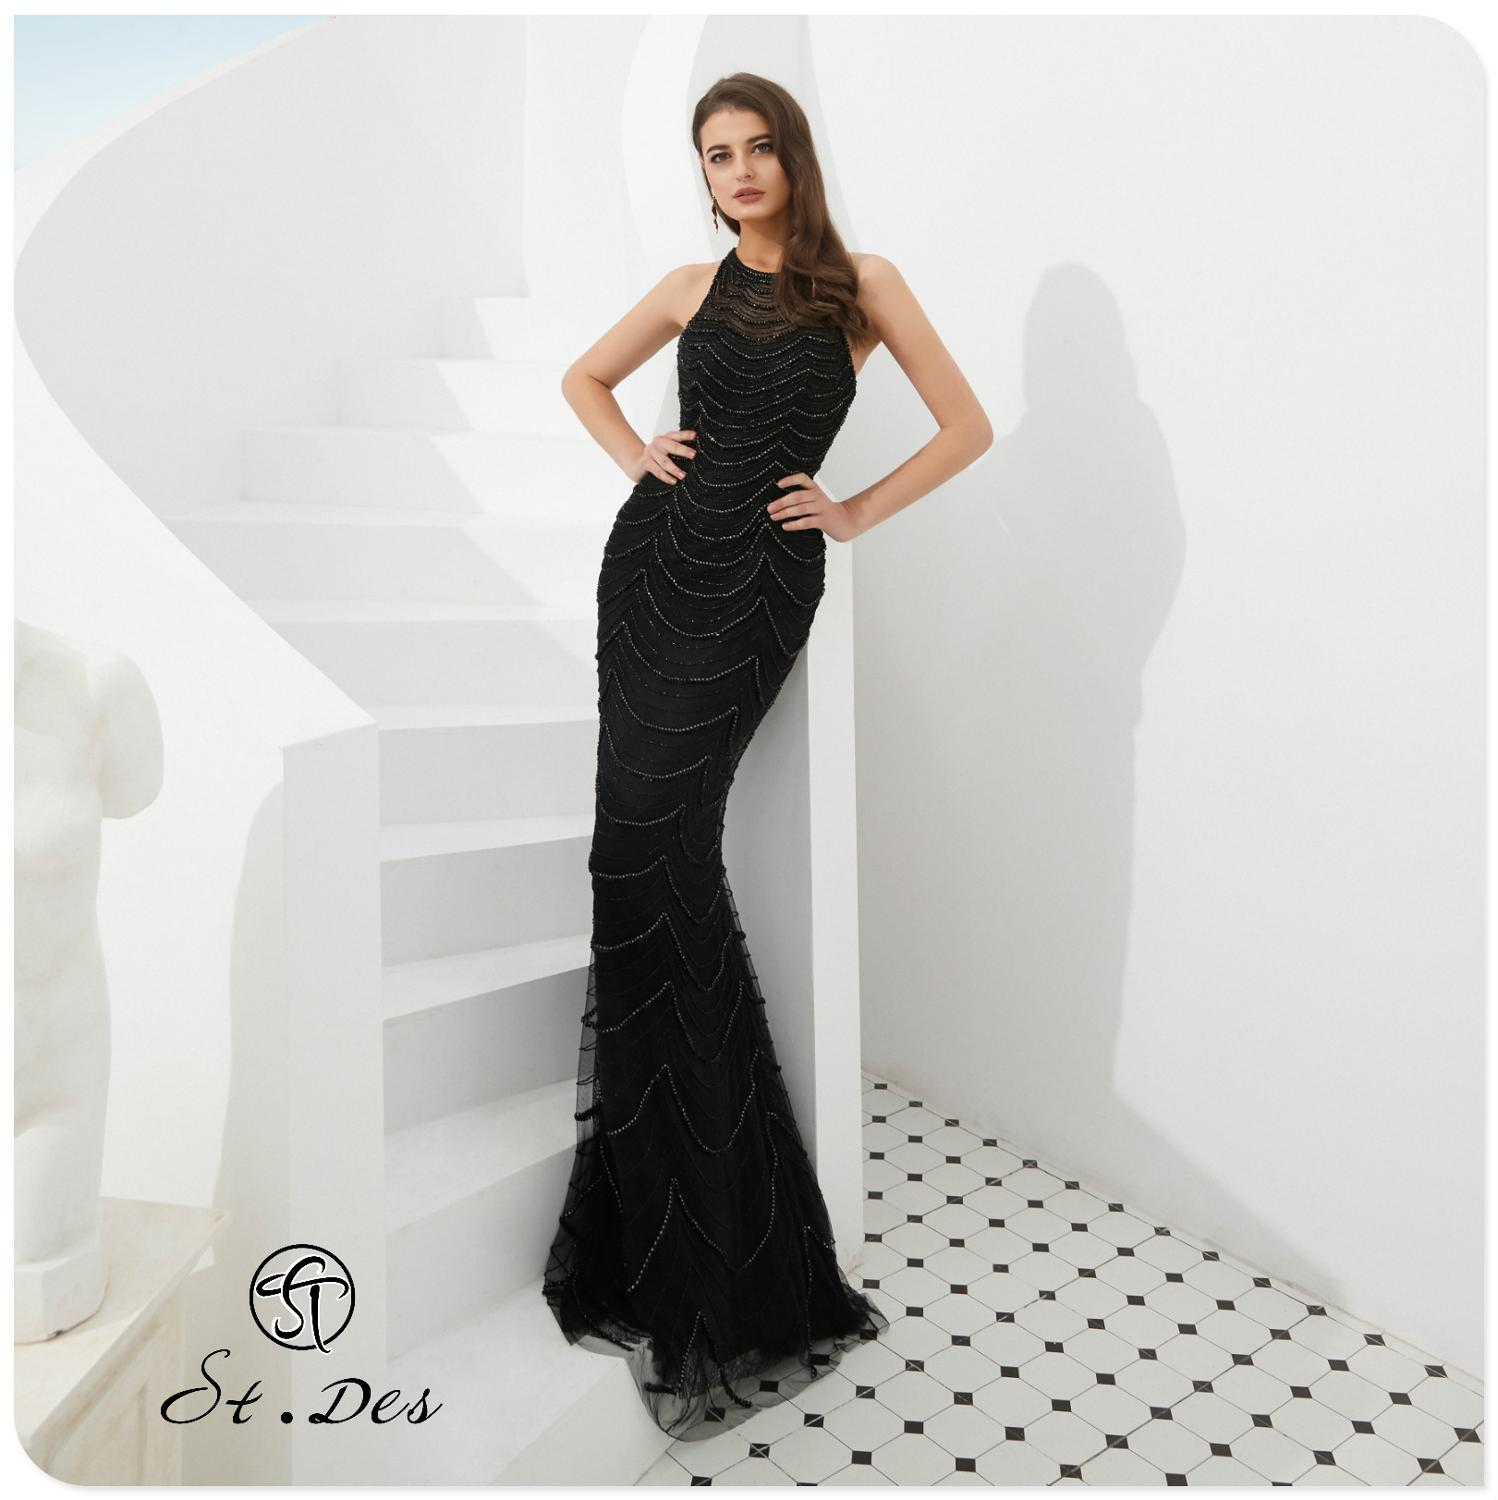 NEW Arrival 2020 St.Des Mermaid Round Neck Sleeveless Russian Black Sequins Floor Length Evening Dress Party Dress Party Gown